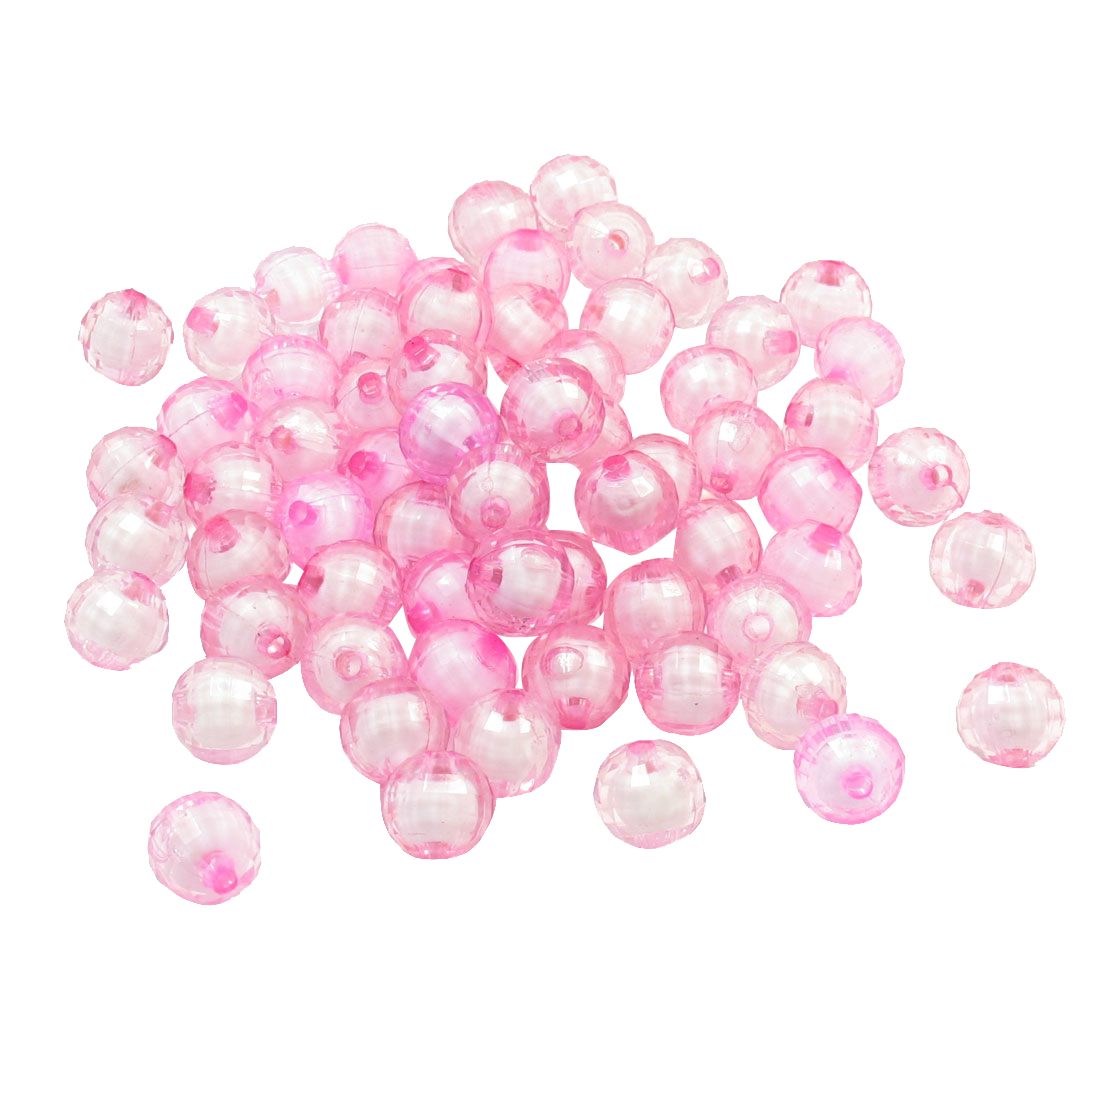 110 Pcs Handcraft Jewelry Earth Design Plastic Facted Beads Pink w Hole